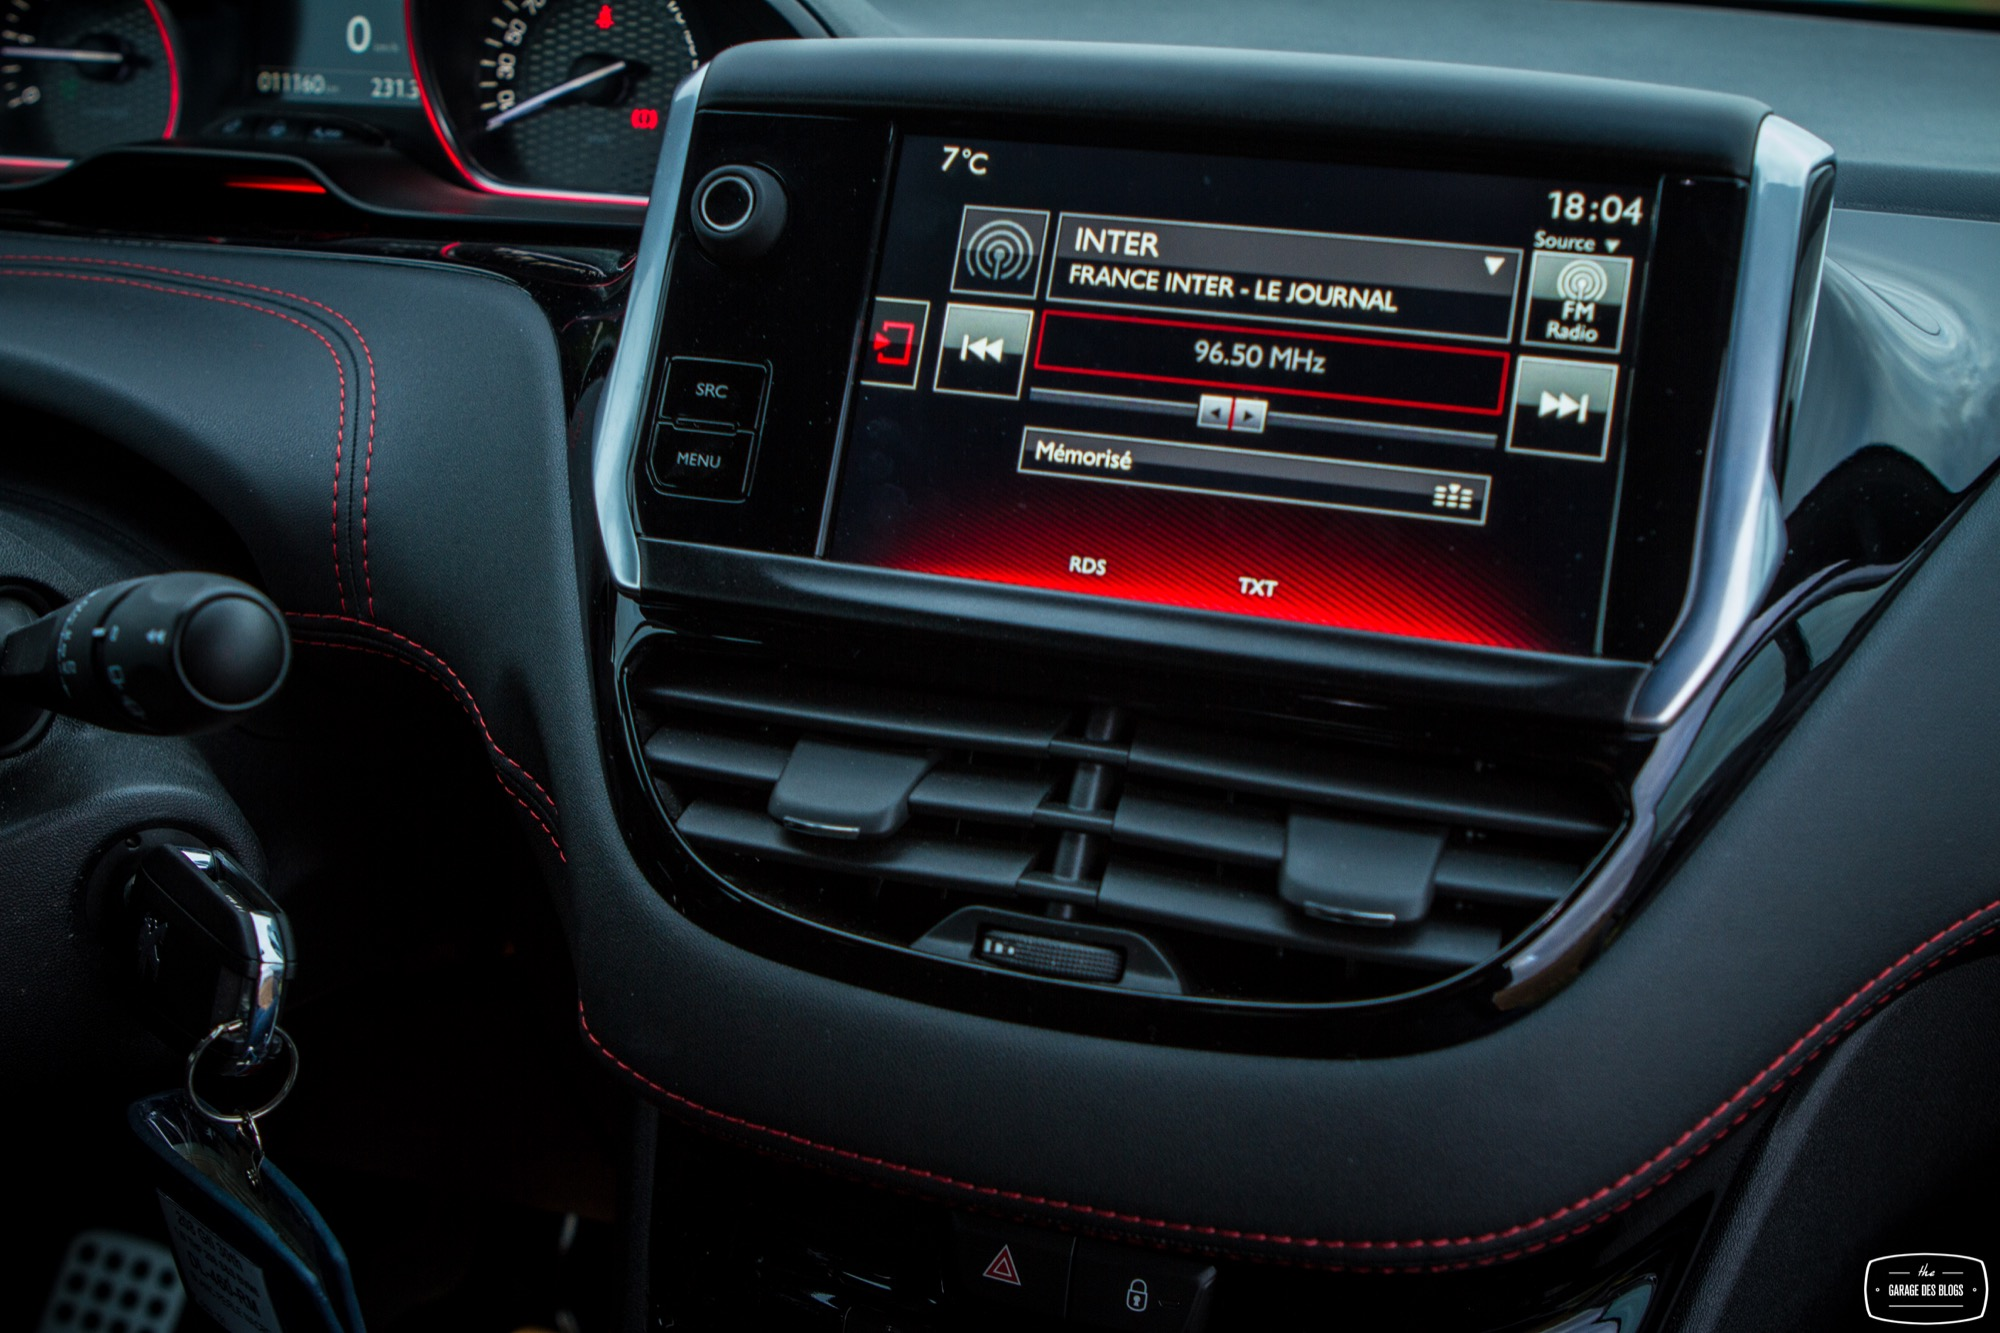 Essai peugeot 208 gti 30th interieur 10 le blog de viinz for Interieur 208 gti